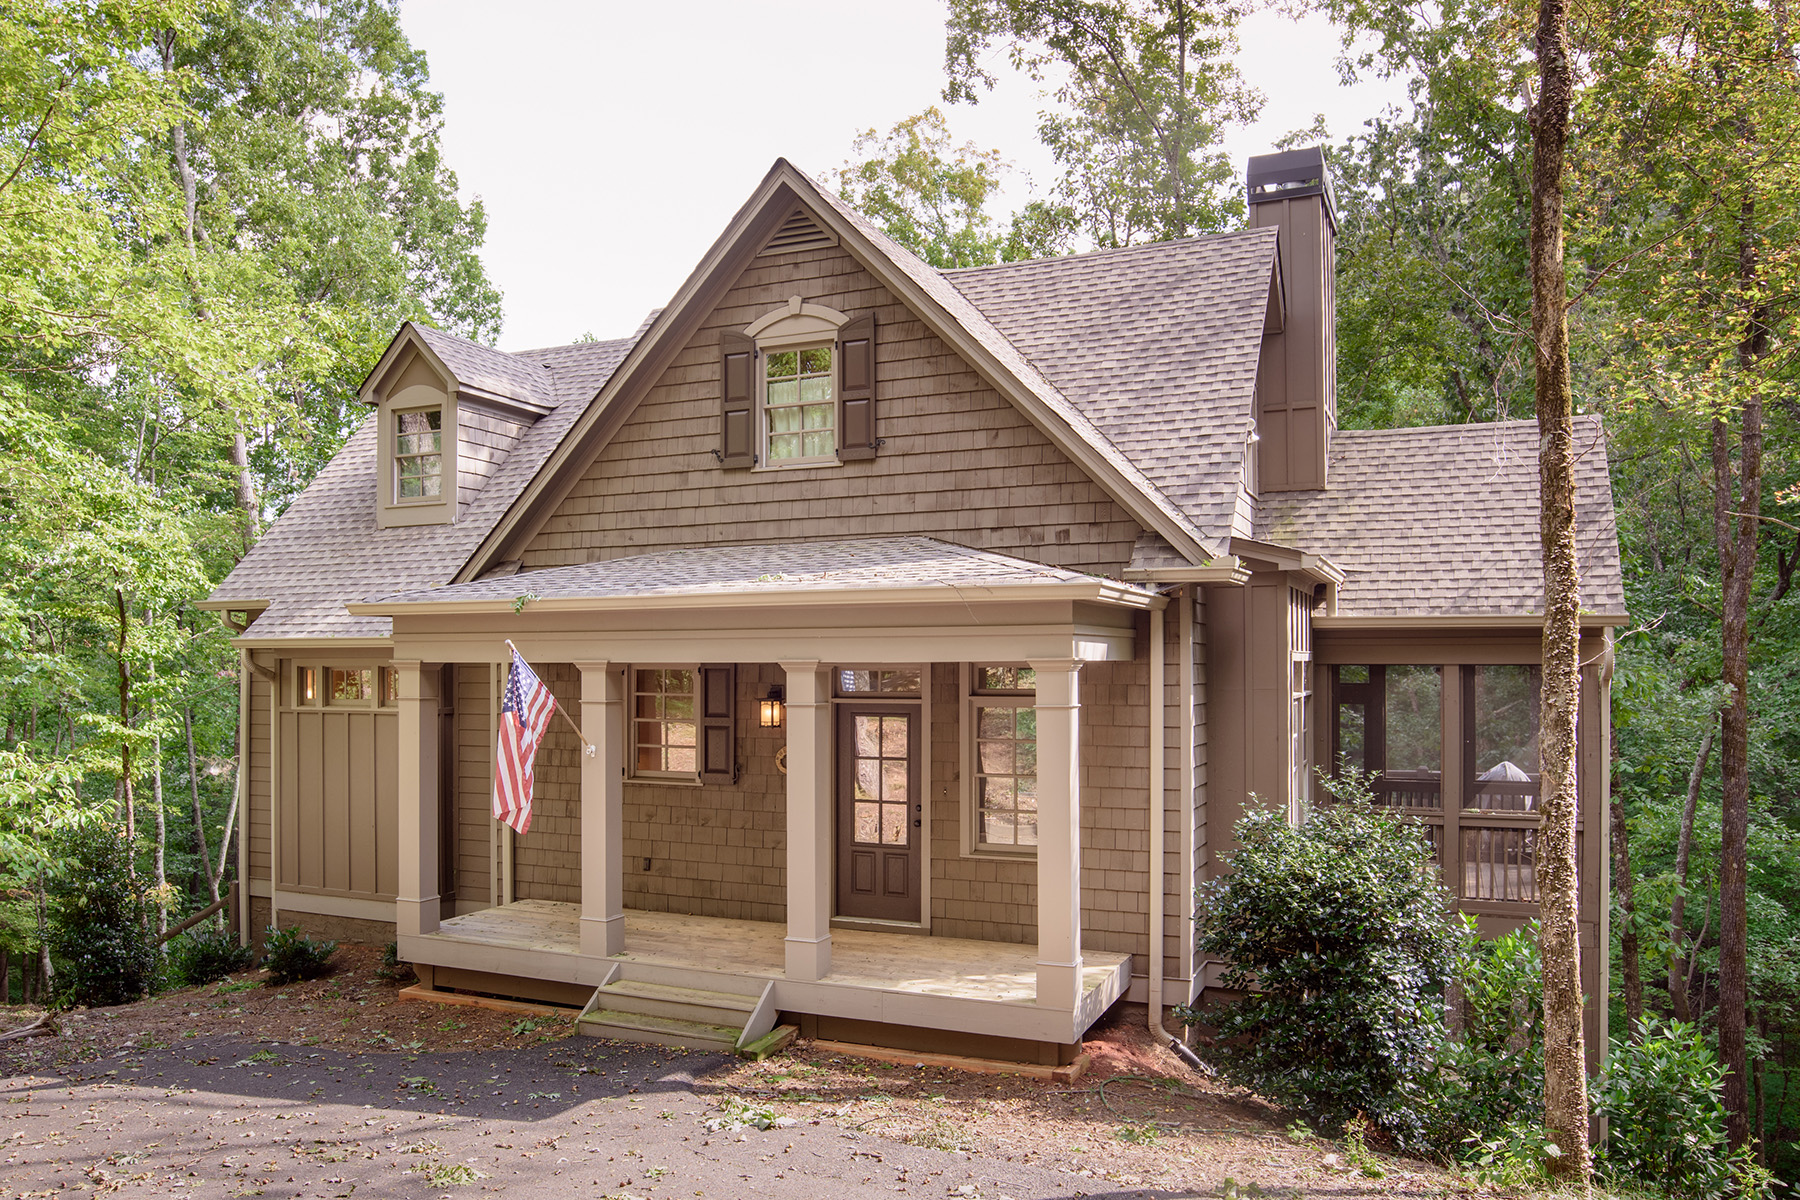 Single Family Home for Rent at Like New Rental Home In Big Canoe 170 Pine Knoll Big Canoe, Georgia 30143 United States